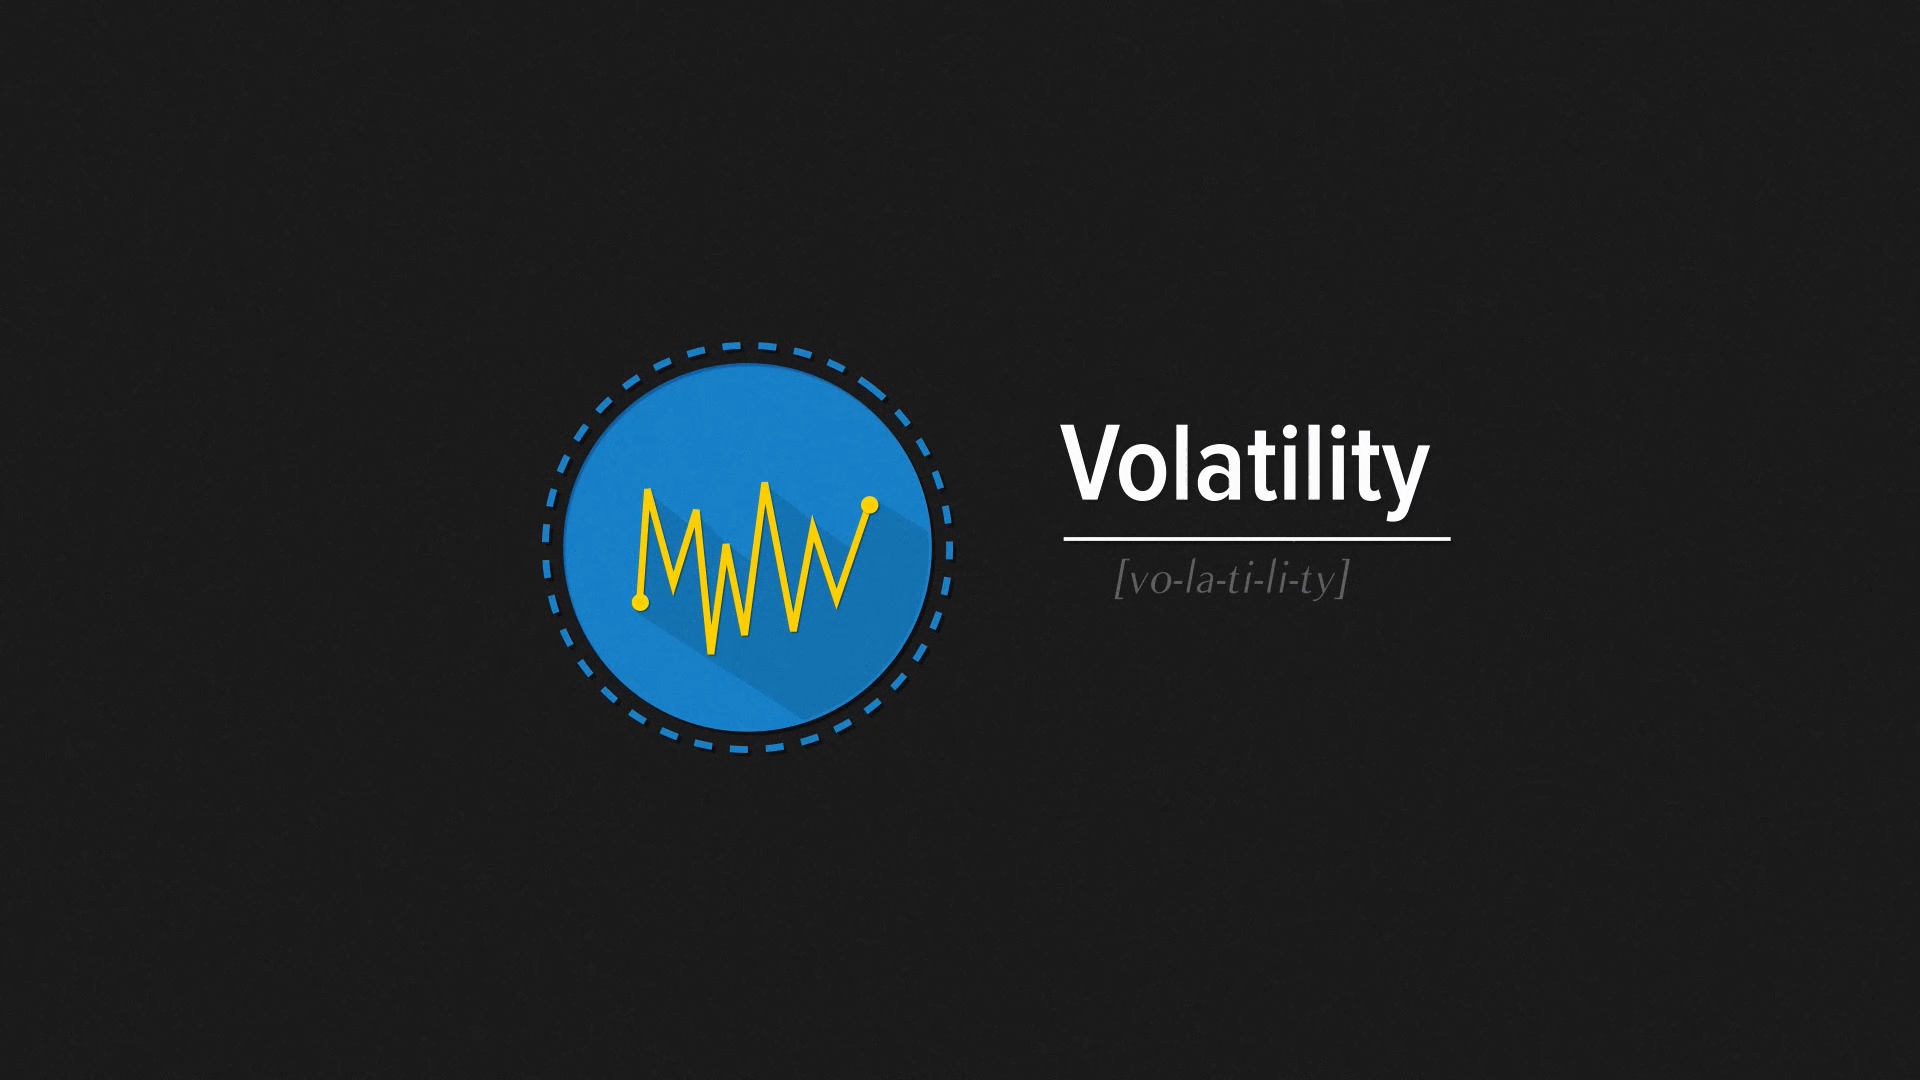 VIX Volatility Index Animated Explainer Video